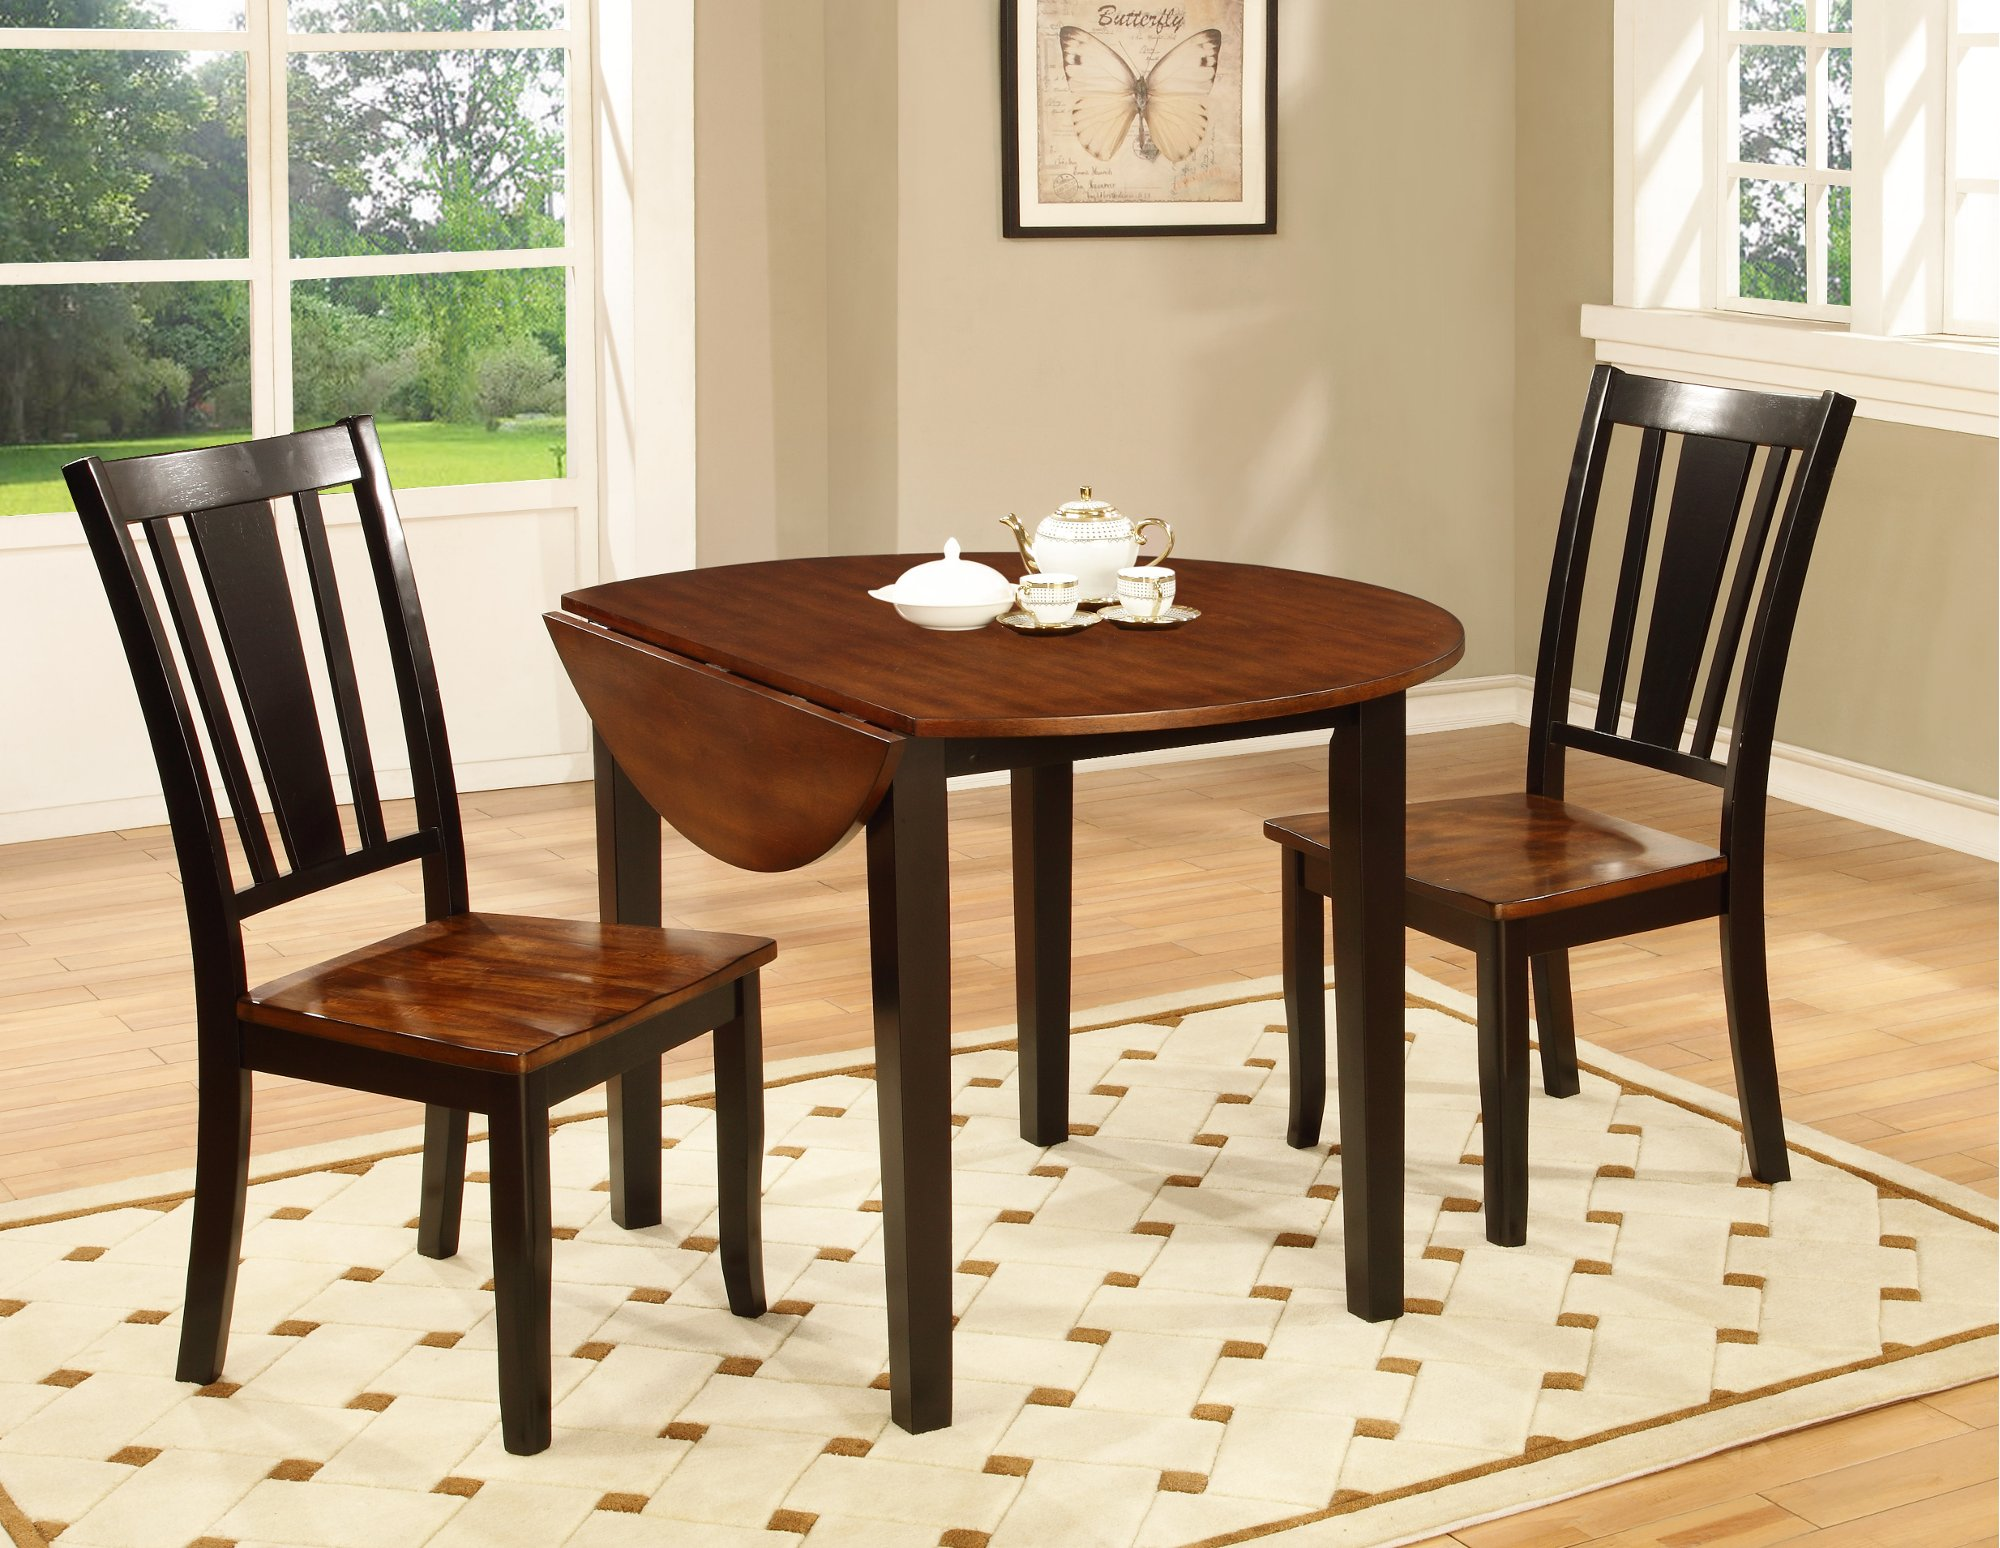 black and cherry 3 piece round dining set dover rc willey furniture store. Black Bedroom Furniture Sets. Home Design Ideas